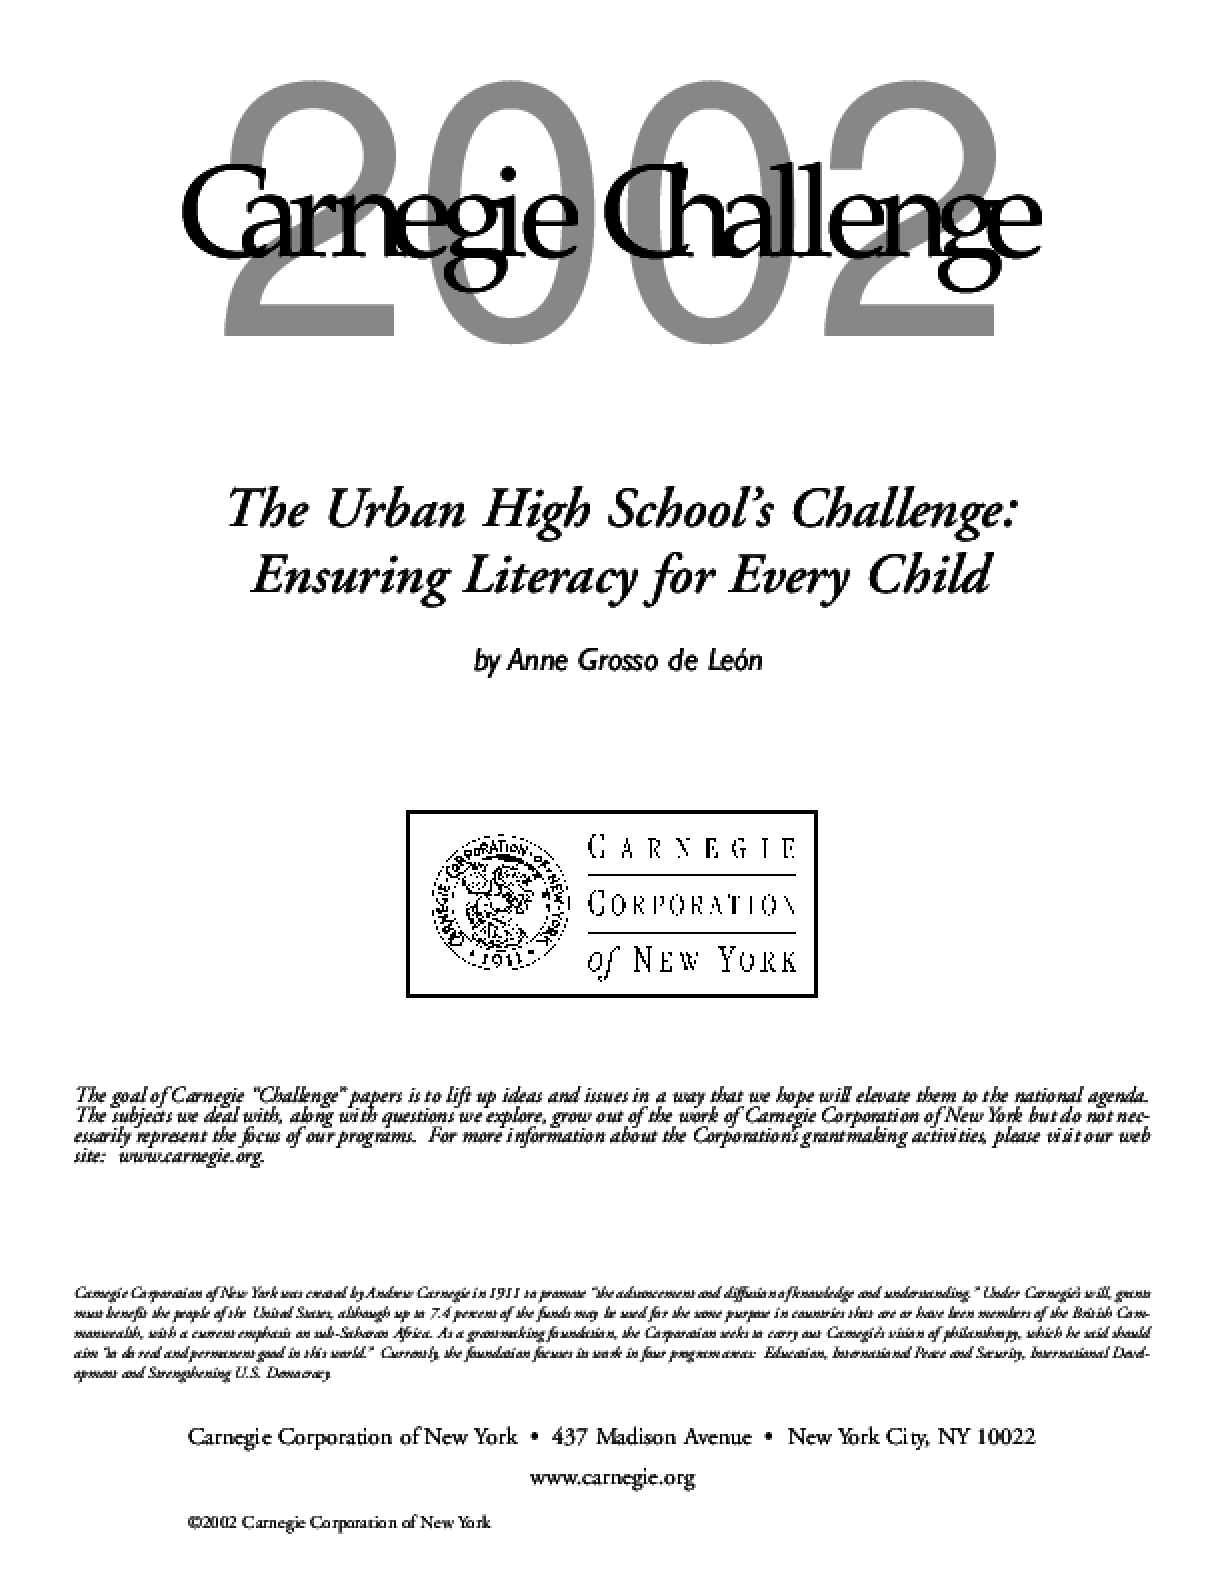 The Urban High School's Challenge: Ensuring Literacy for Every Child